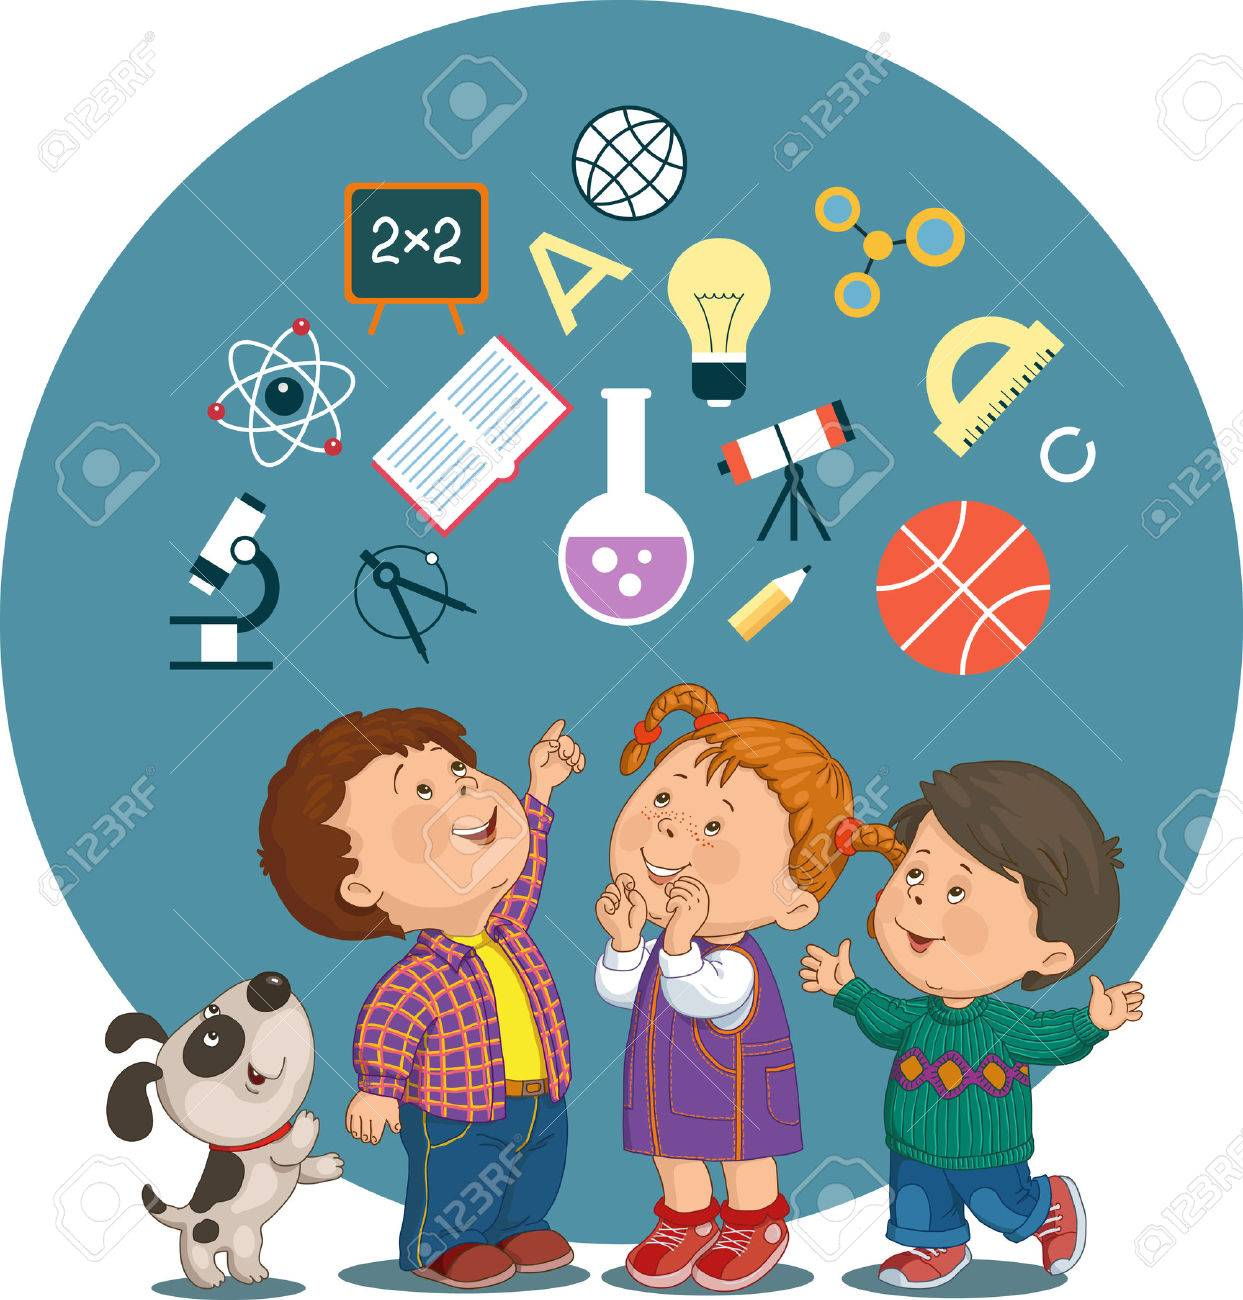 Conceptual illustration of cheerful children with education icons in a circle - 46515240